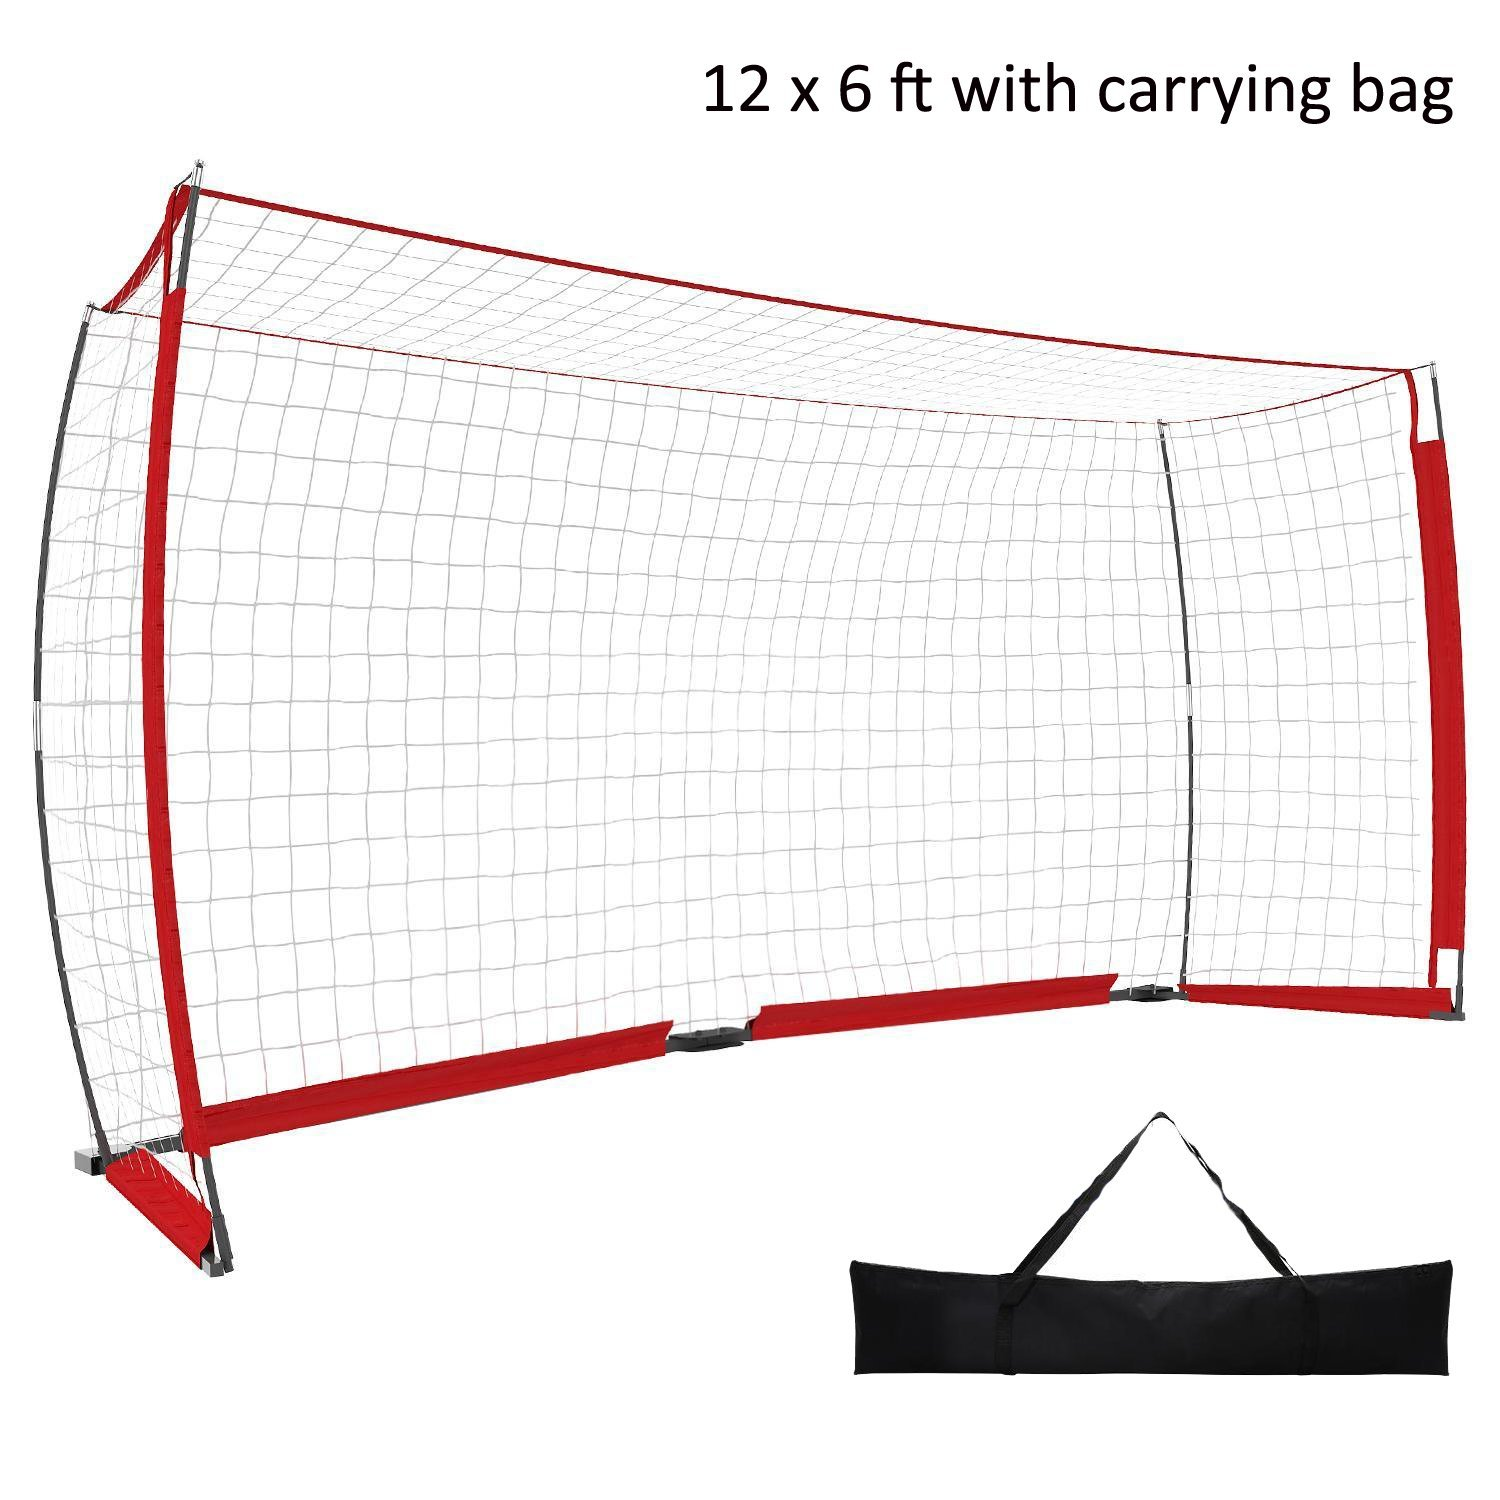 benletポータブルSoccer Football Goal Net with Bowフレームクイックセットアップ( Available in 12 x 6 ft、6 x 4 ft ) [米国ストック] B07BT4HX8Q 12 x 6 ft -Red 12 x 6 ft -Red